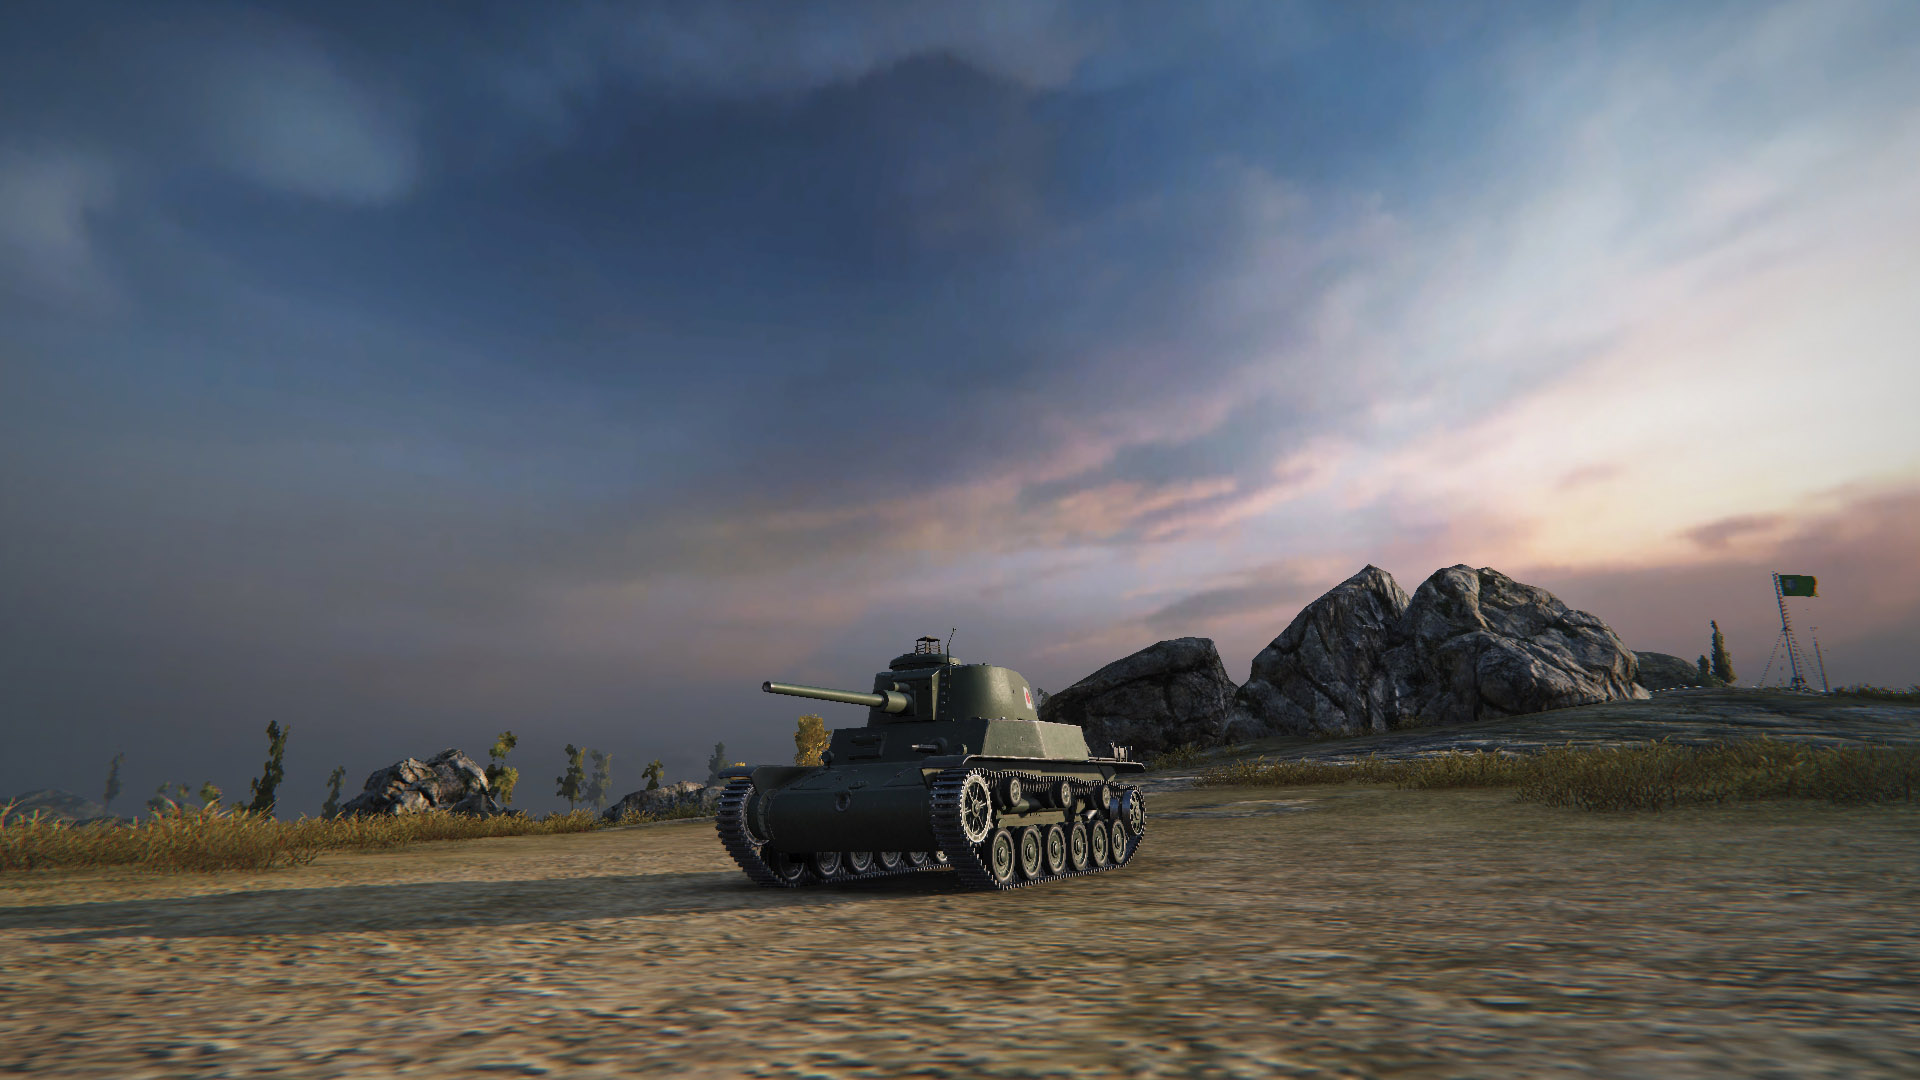 Similar to the Covenanter, the Type 5 Ke-Ho is ideal for fast manoeuvring and dishing out damage with its surprisingly powerful gun.